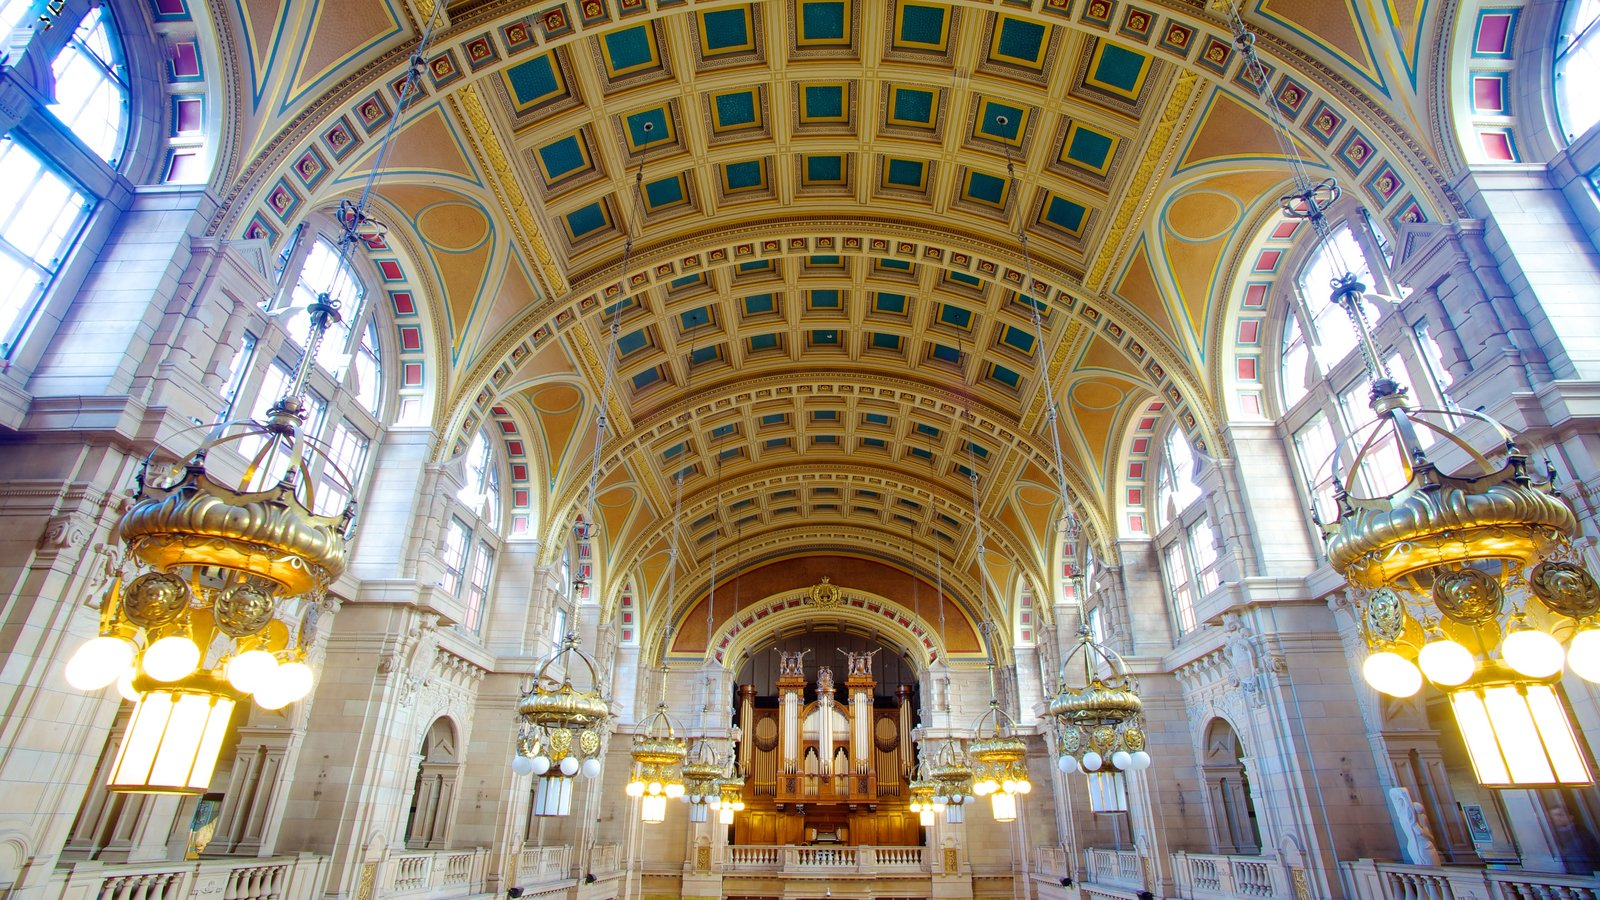 Kelvingrove Art Gallery and Museum featuring interior views and art